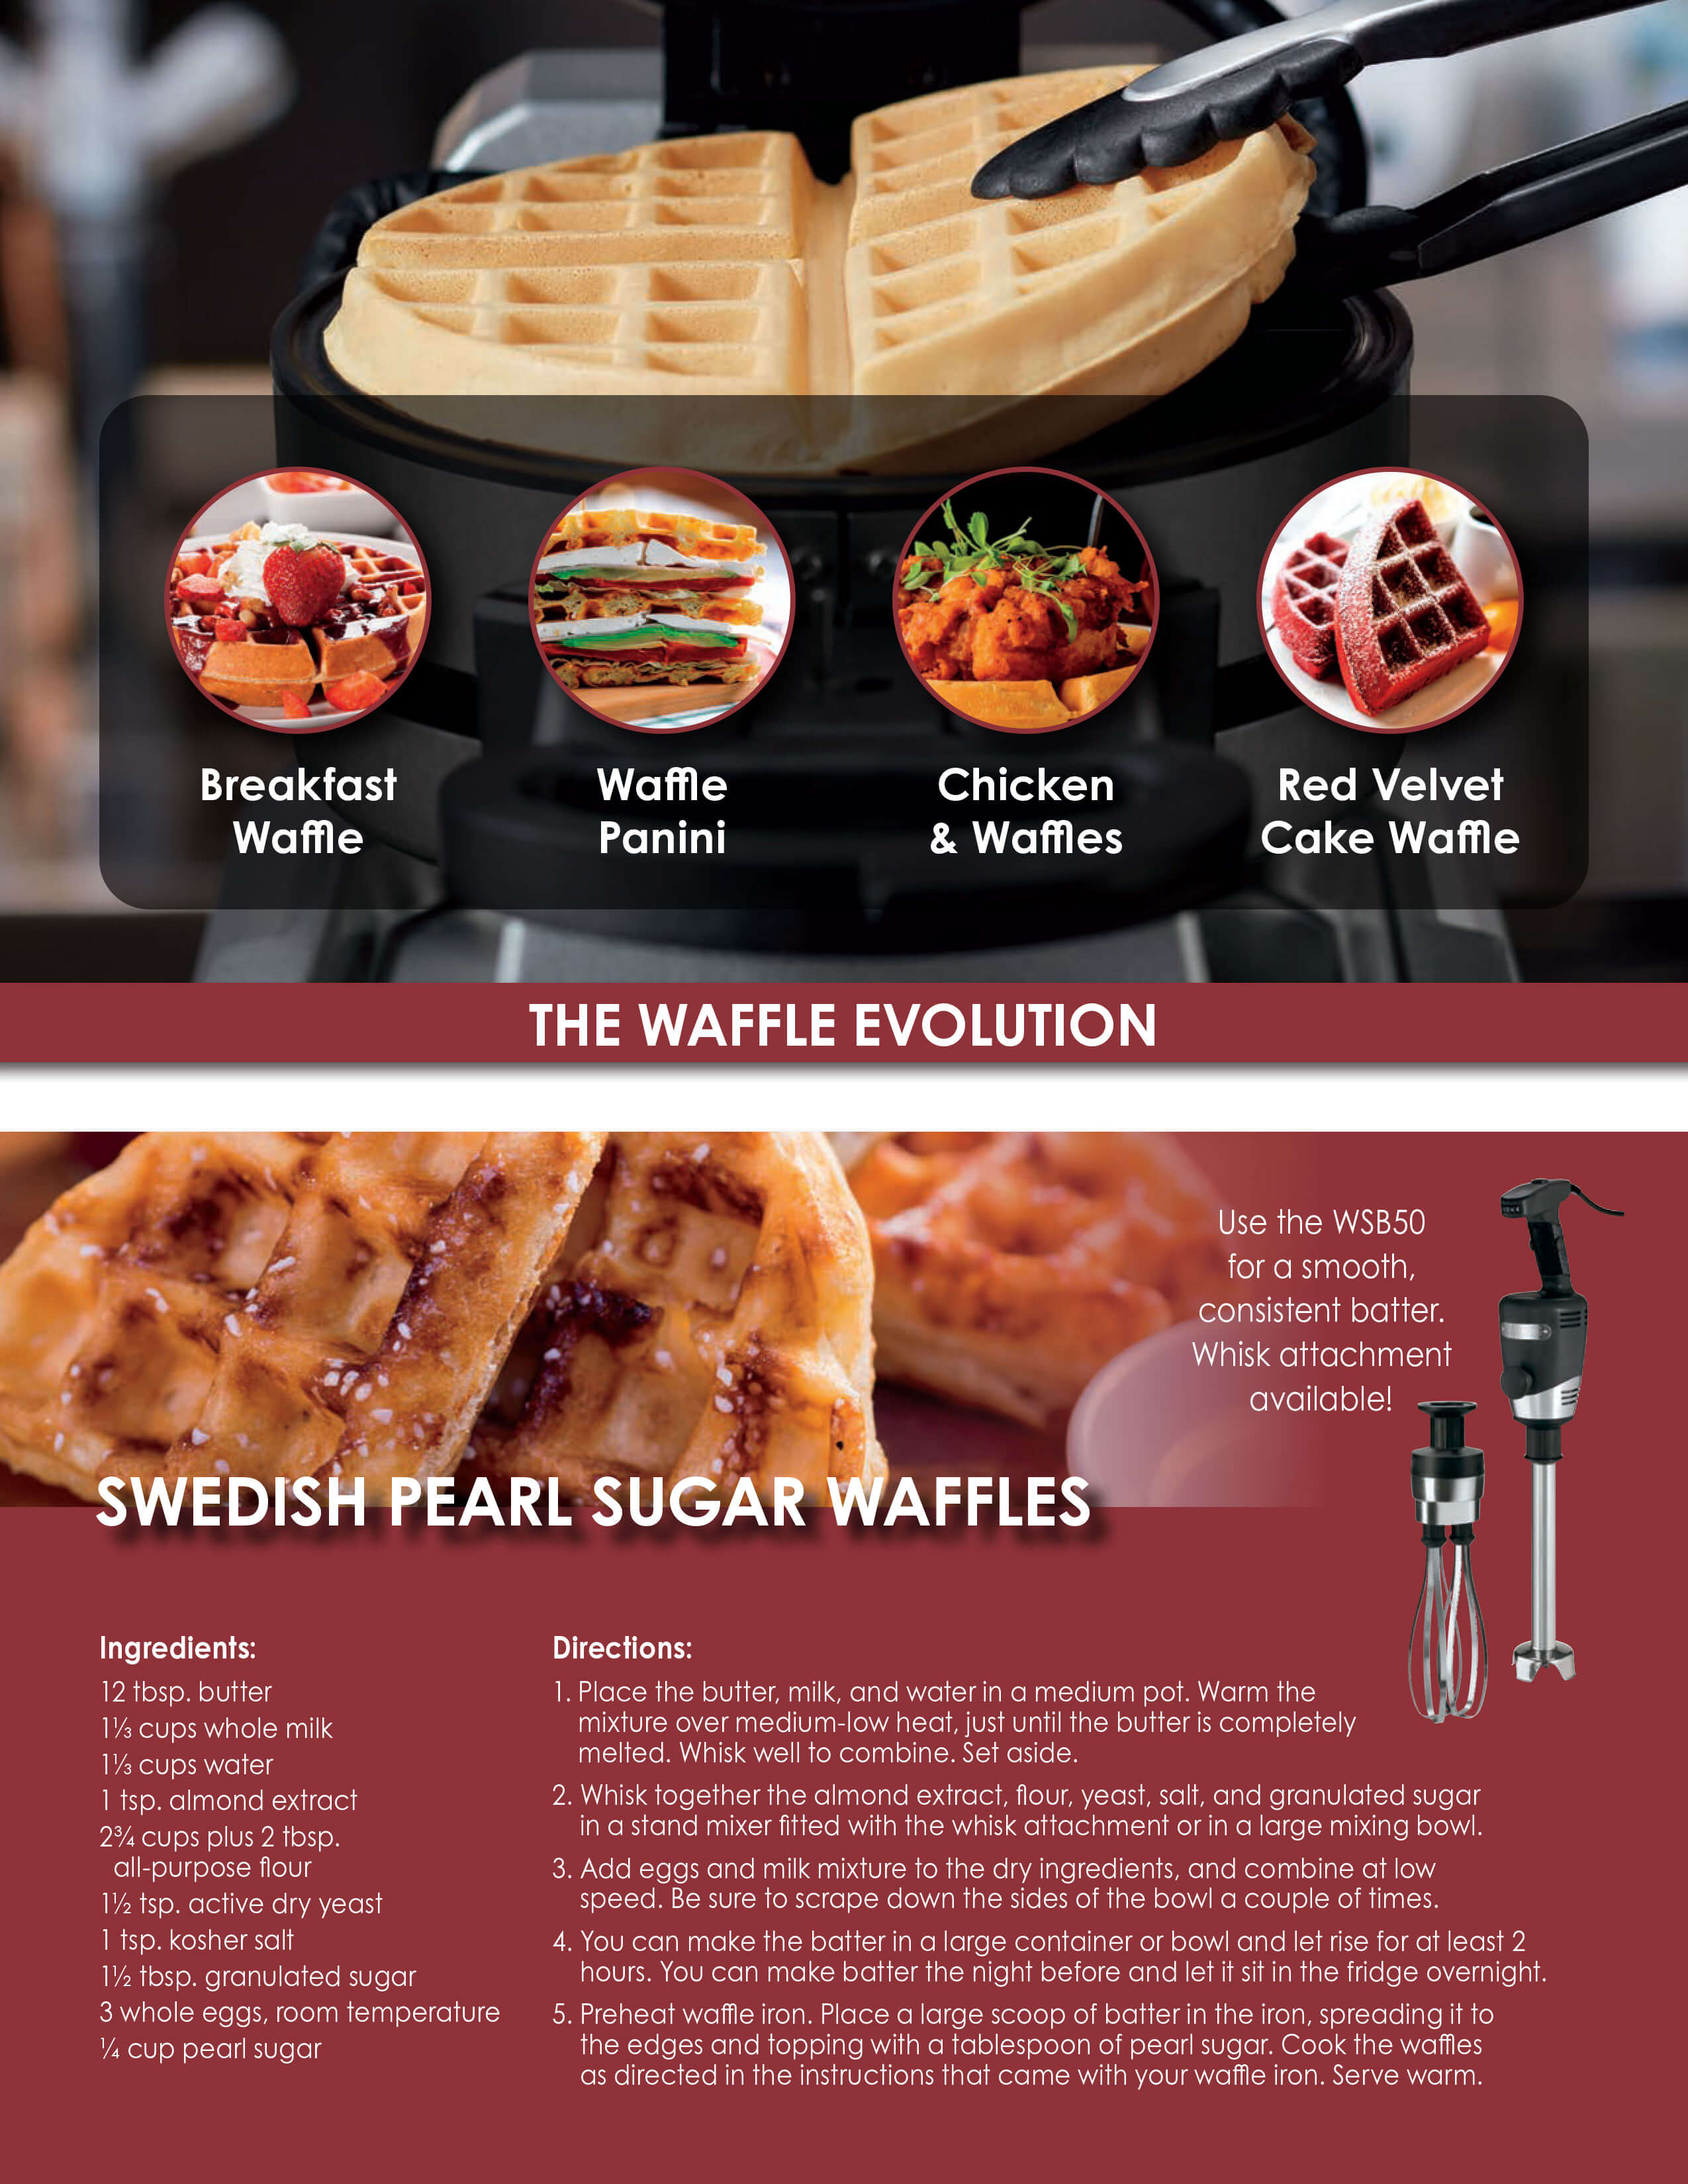 Waring - The Waffle Evolution